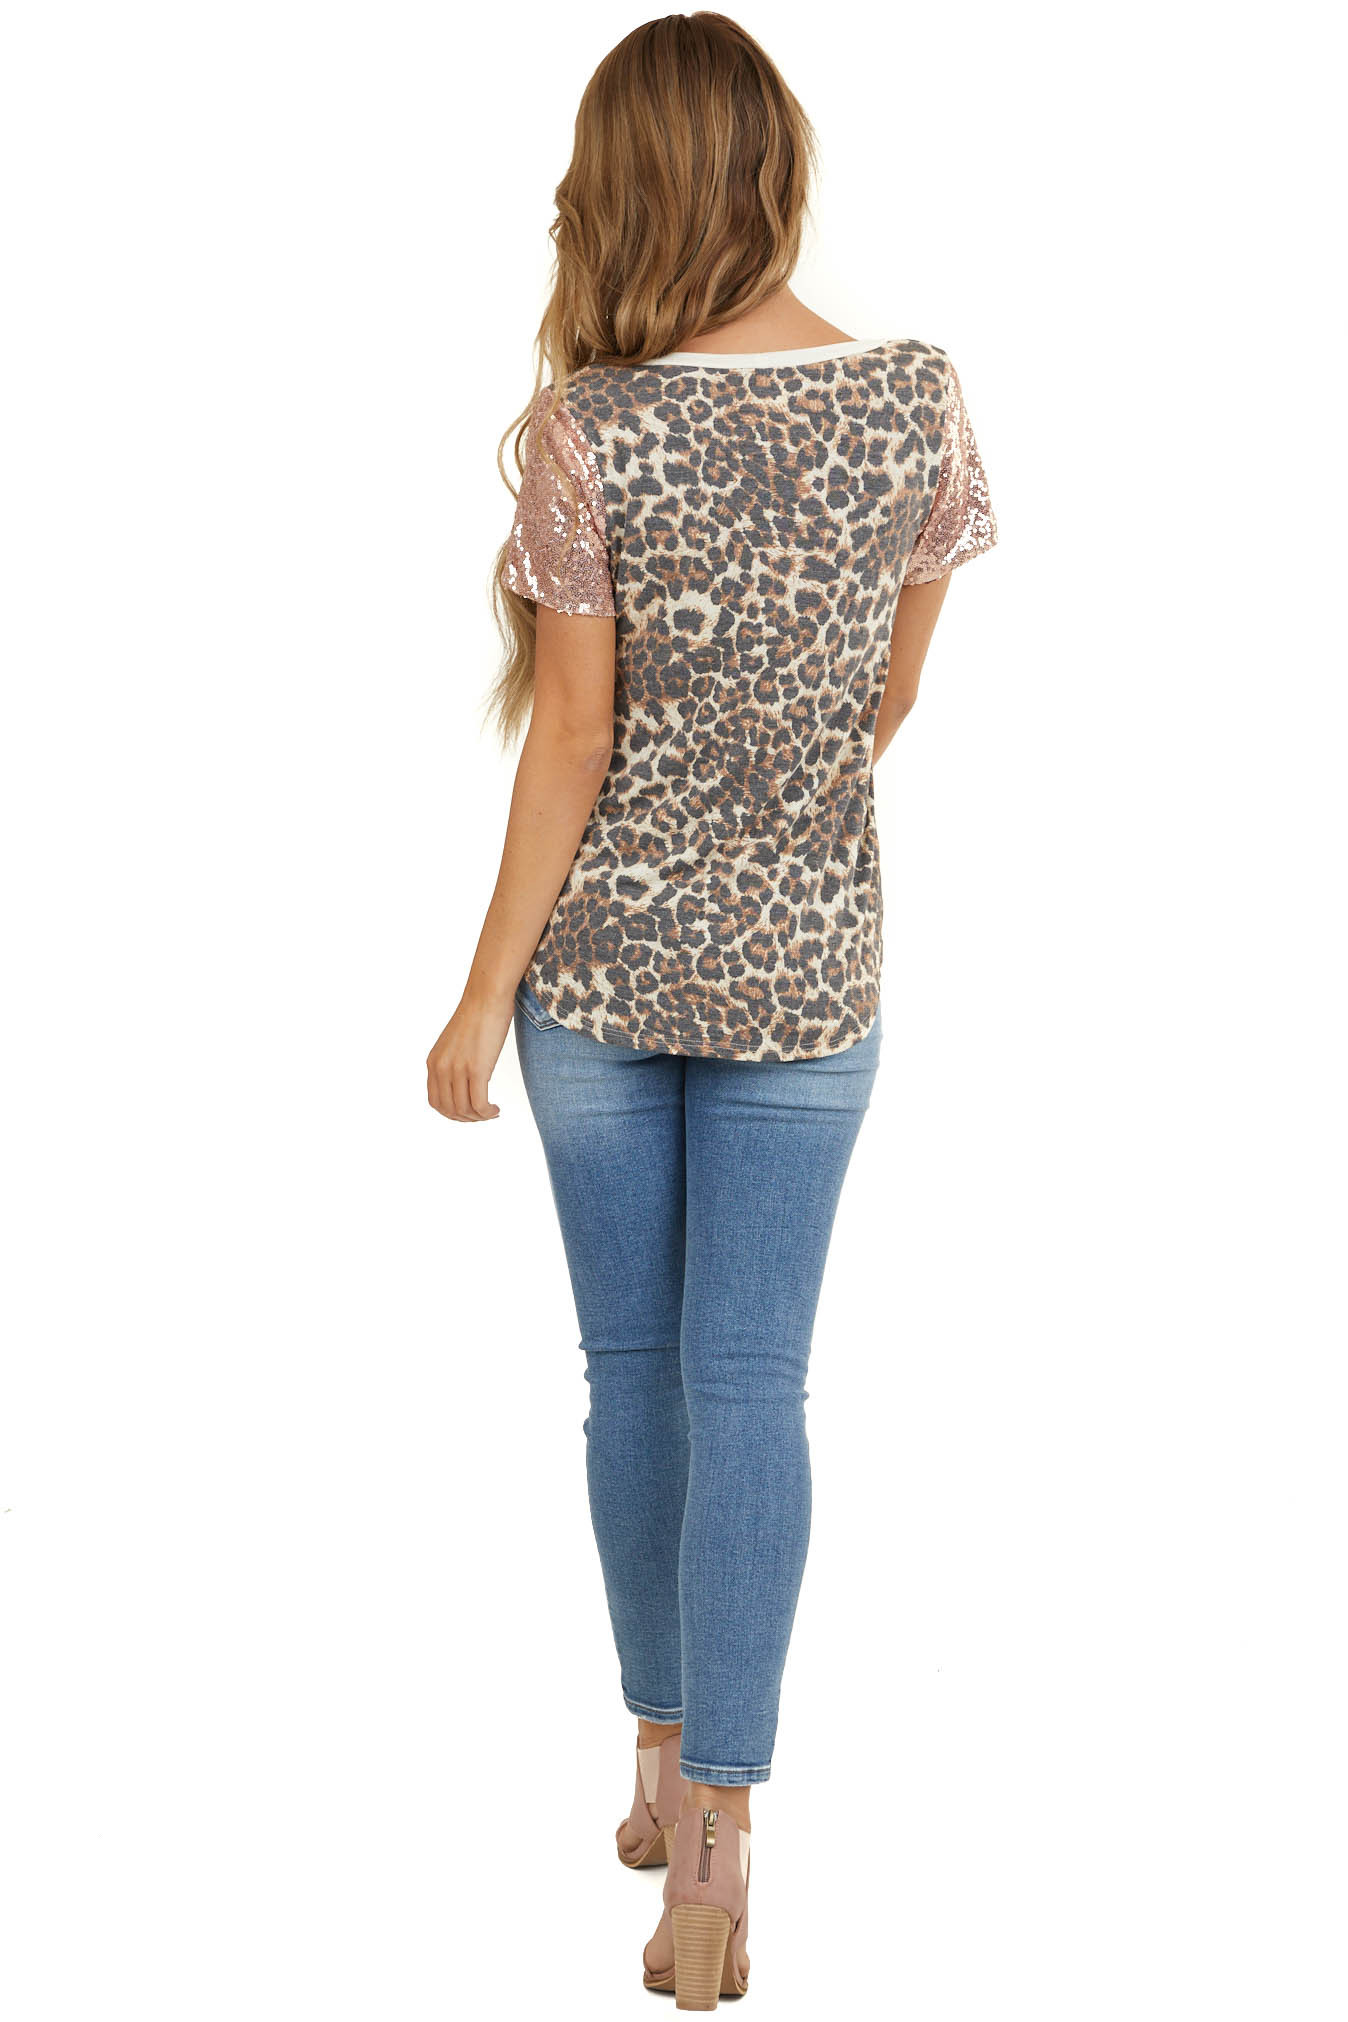 Cream Leopard Print Knit Top with Rose Gold Sequin Contrast